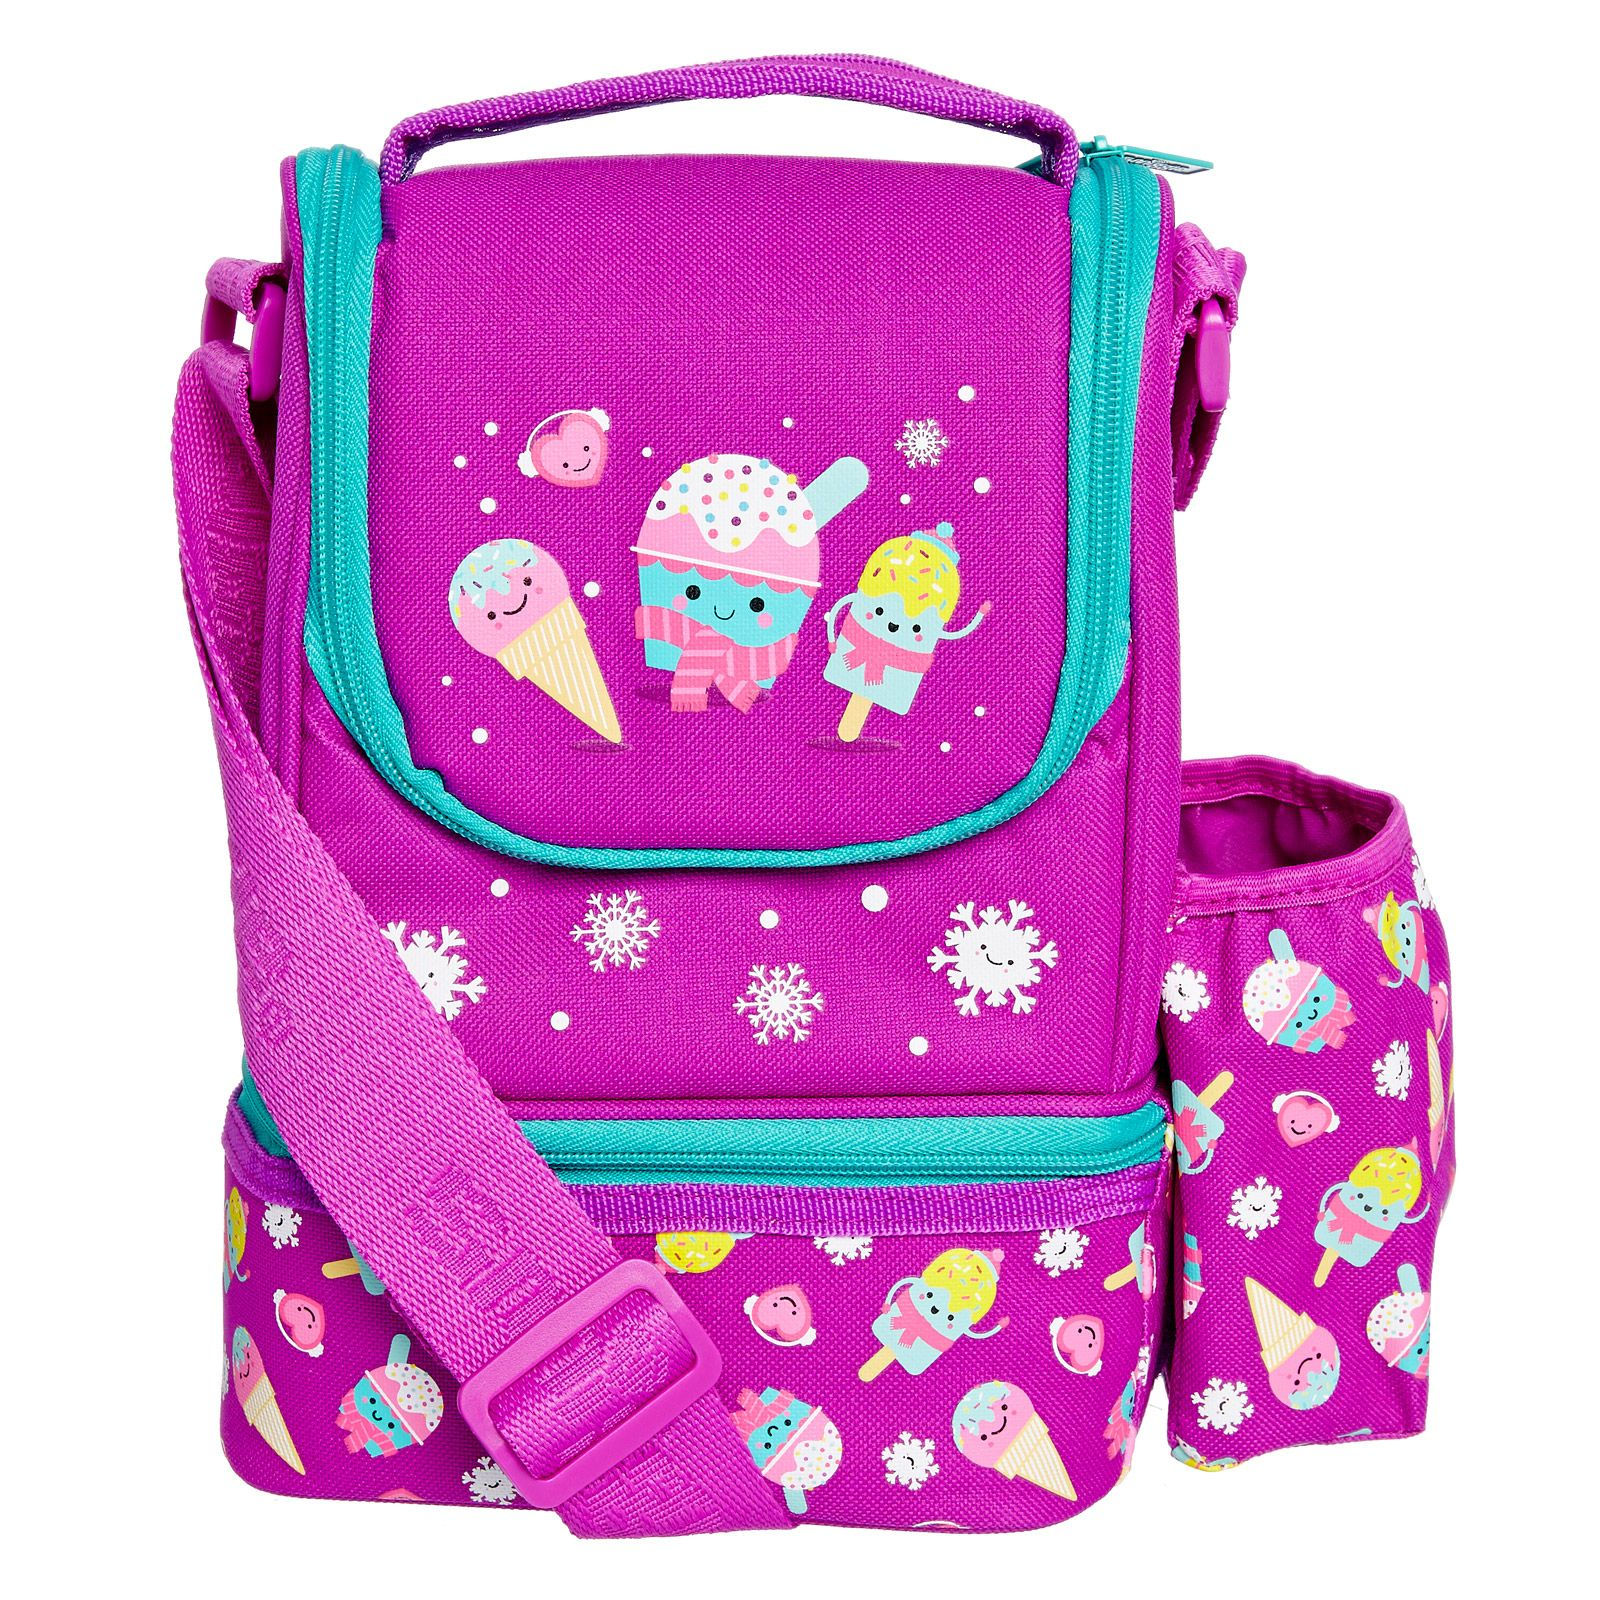 image for yums double decker lunch box from smiggle uk alexas